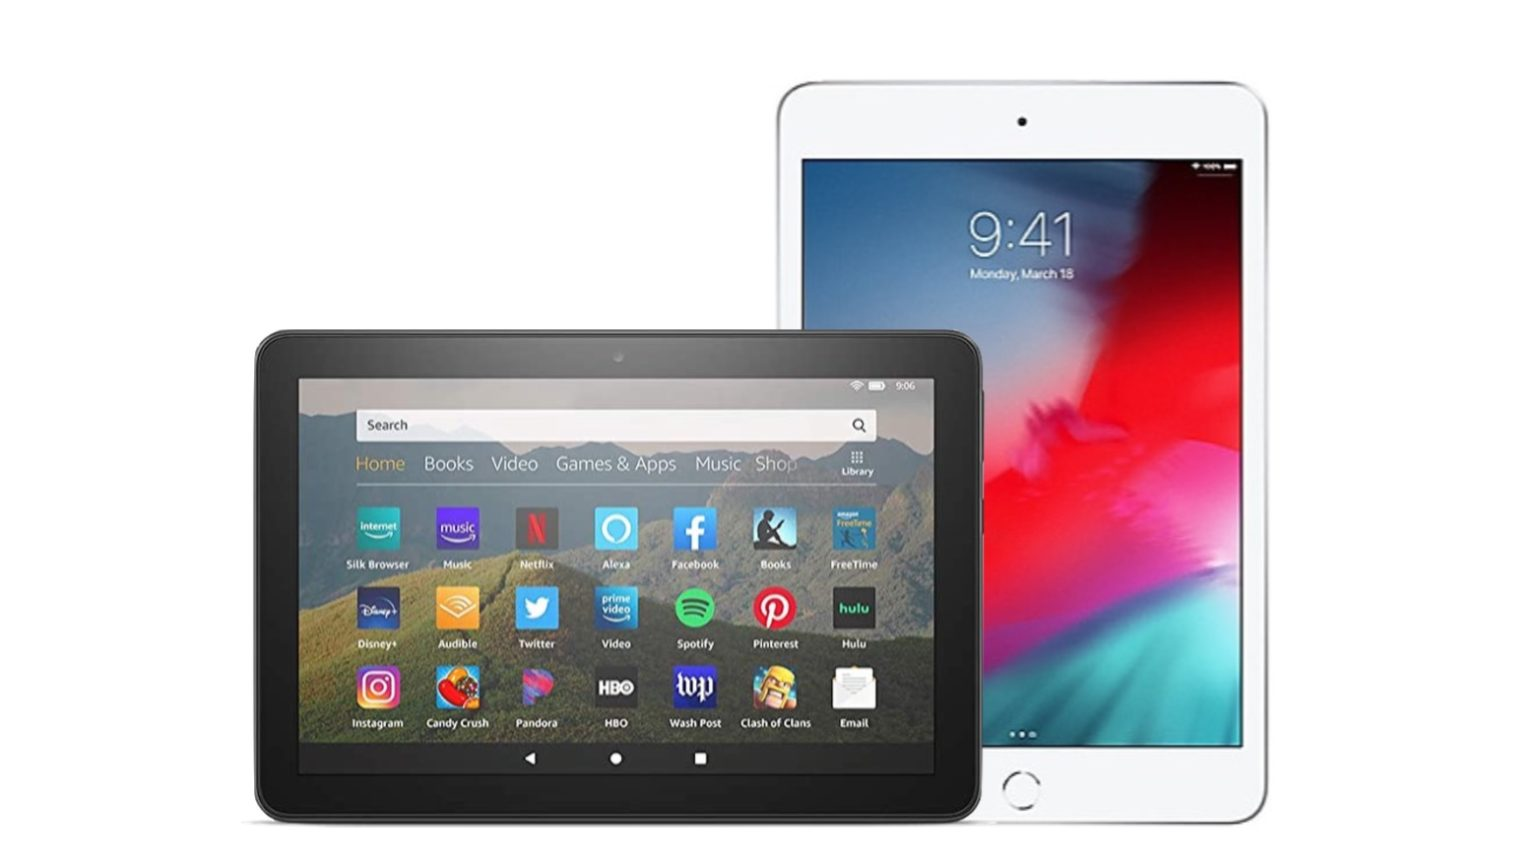 Amazon Fire HD 8 takes on Apple iPad mini 5